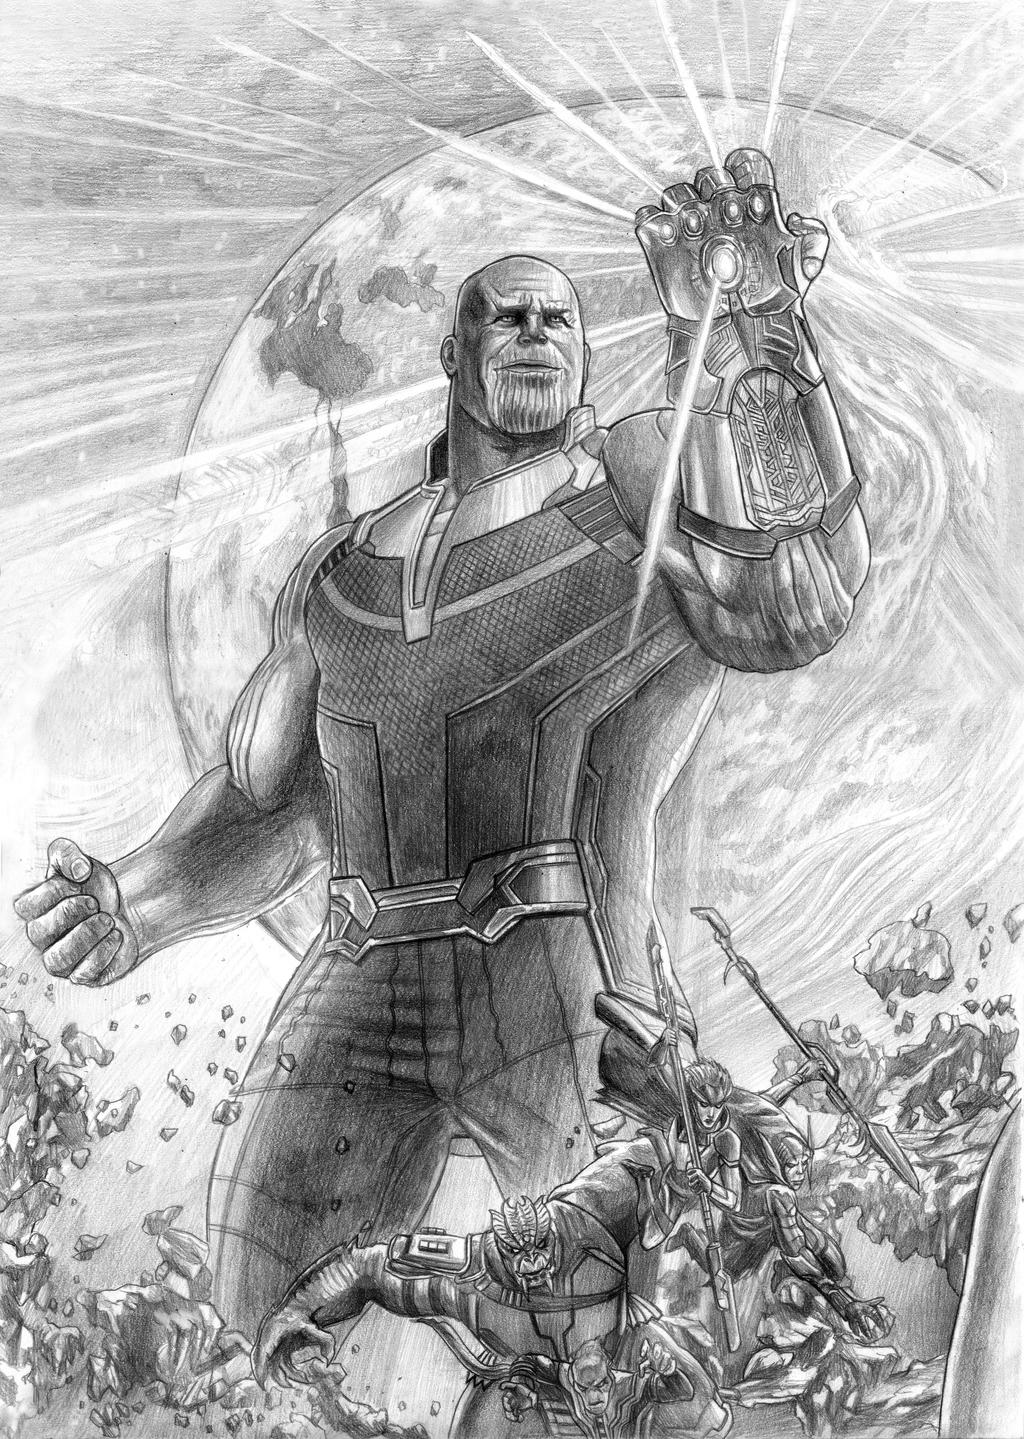 Avengers Infinity War Thanos And The Black Order By